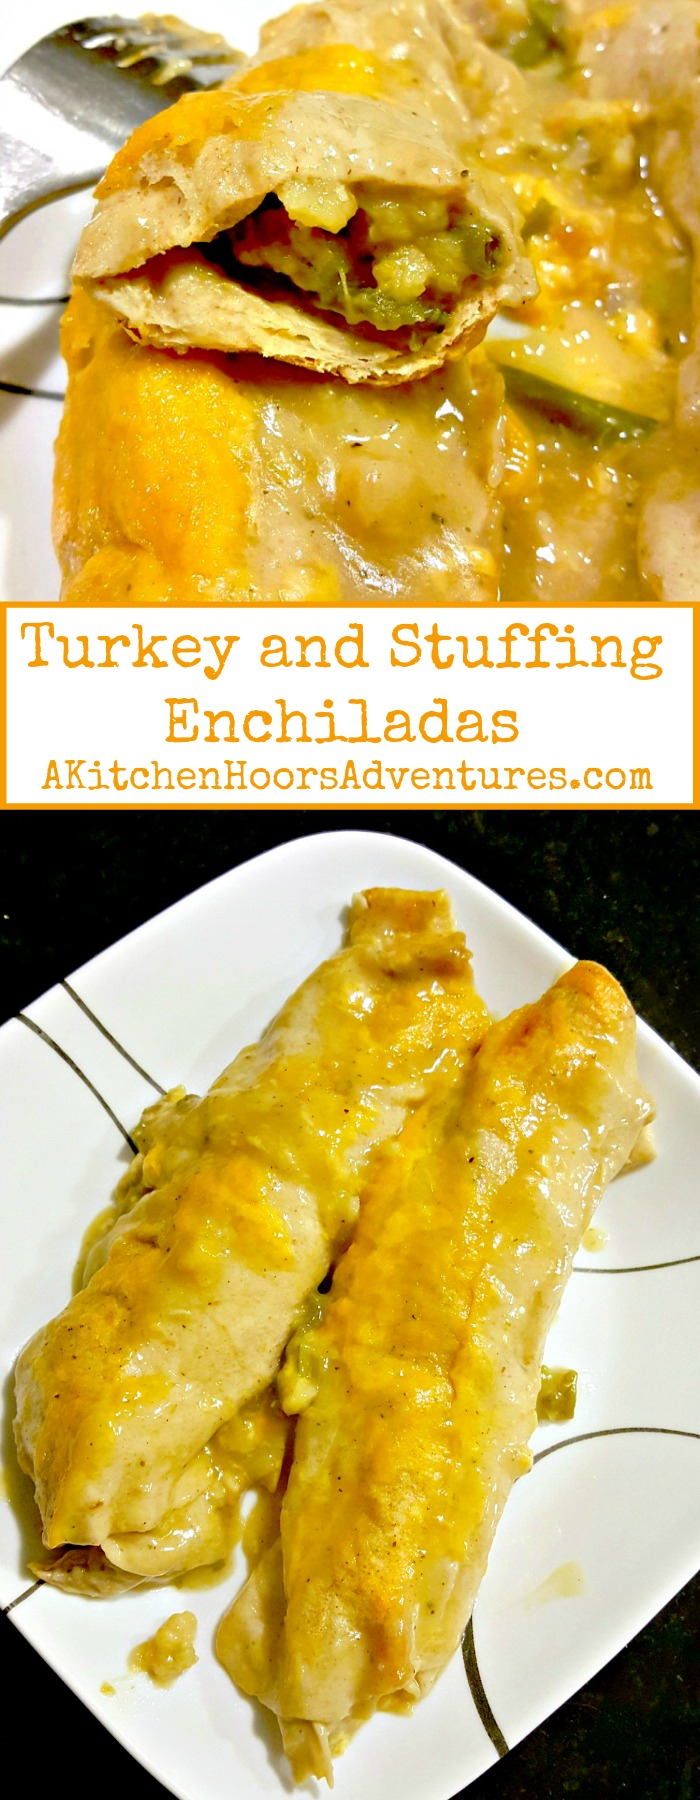 Re-purpose your holiday leftovers into these simple yet scrumptious enchiladas.  Turkey And Stuffing Enchiladas come together in a flash and have all the flavors of your holiday meal in a tasty enchilada.